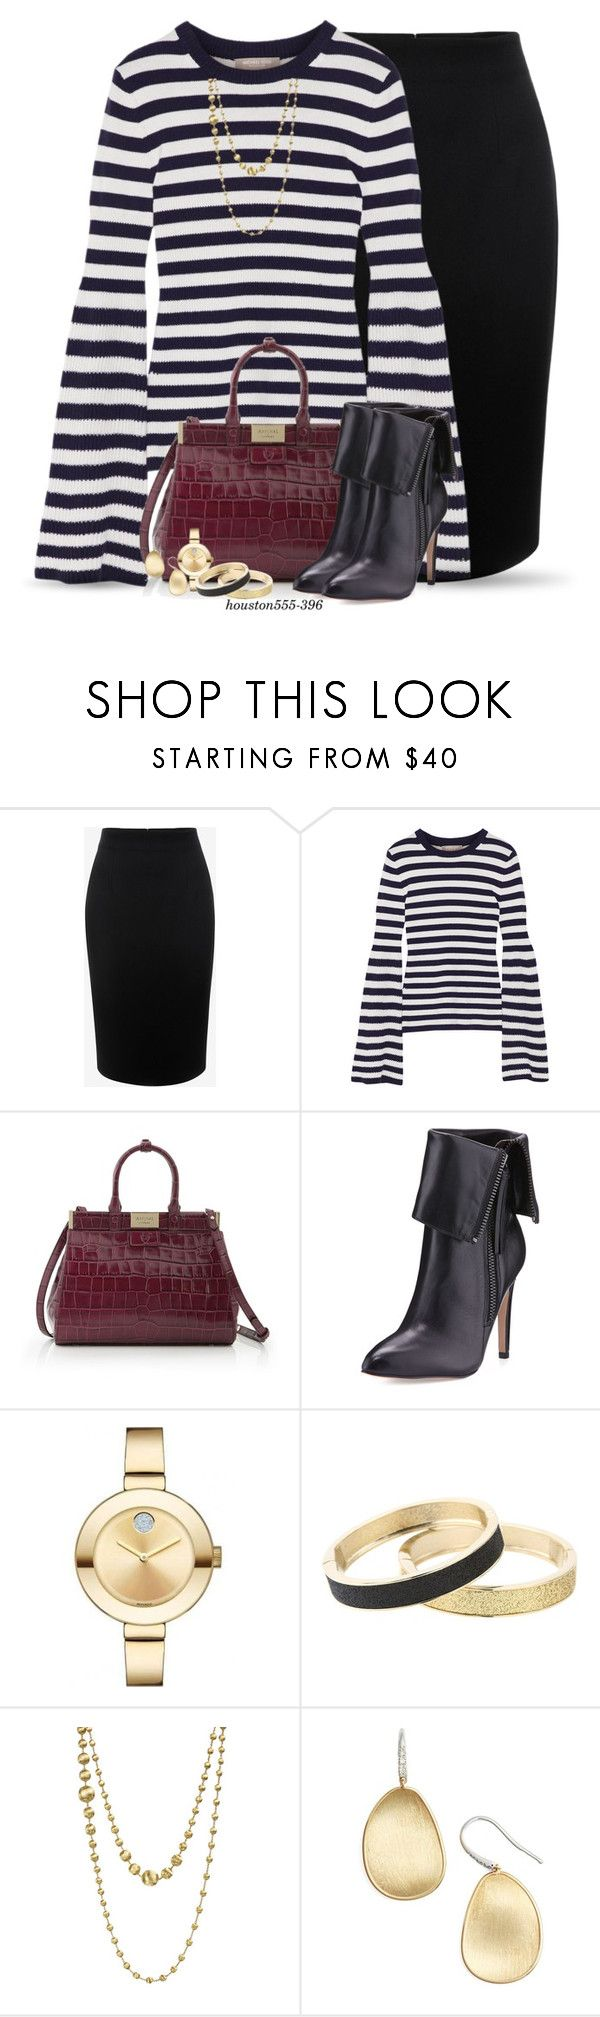 """""""Stripes for the office"""" by houston555-396 ❤ liked on Polyvore featuring Alexander McQueen, Michael Kors, Aspinal of London, Neiman Marcus, Movado, Betsey Johnson and Marco Bicego"""